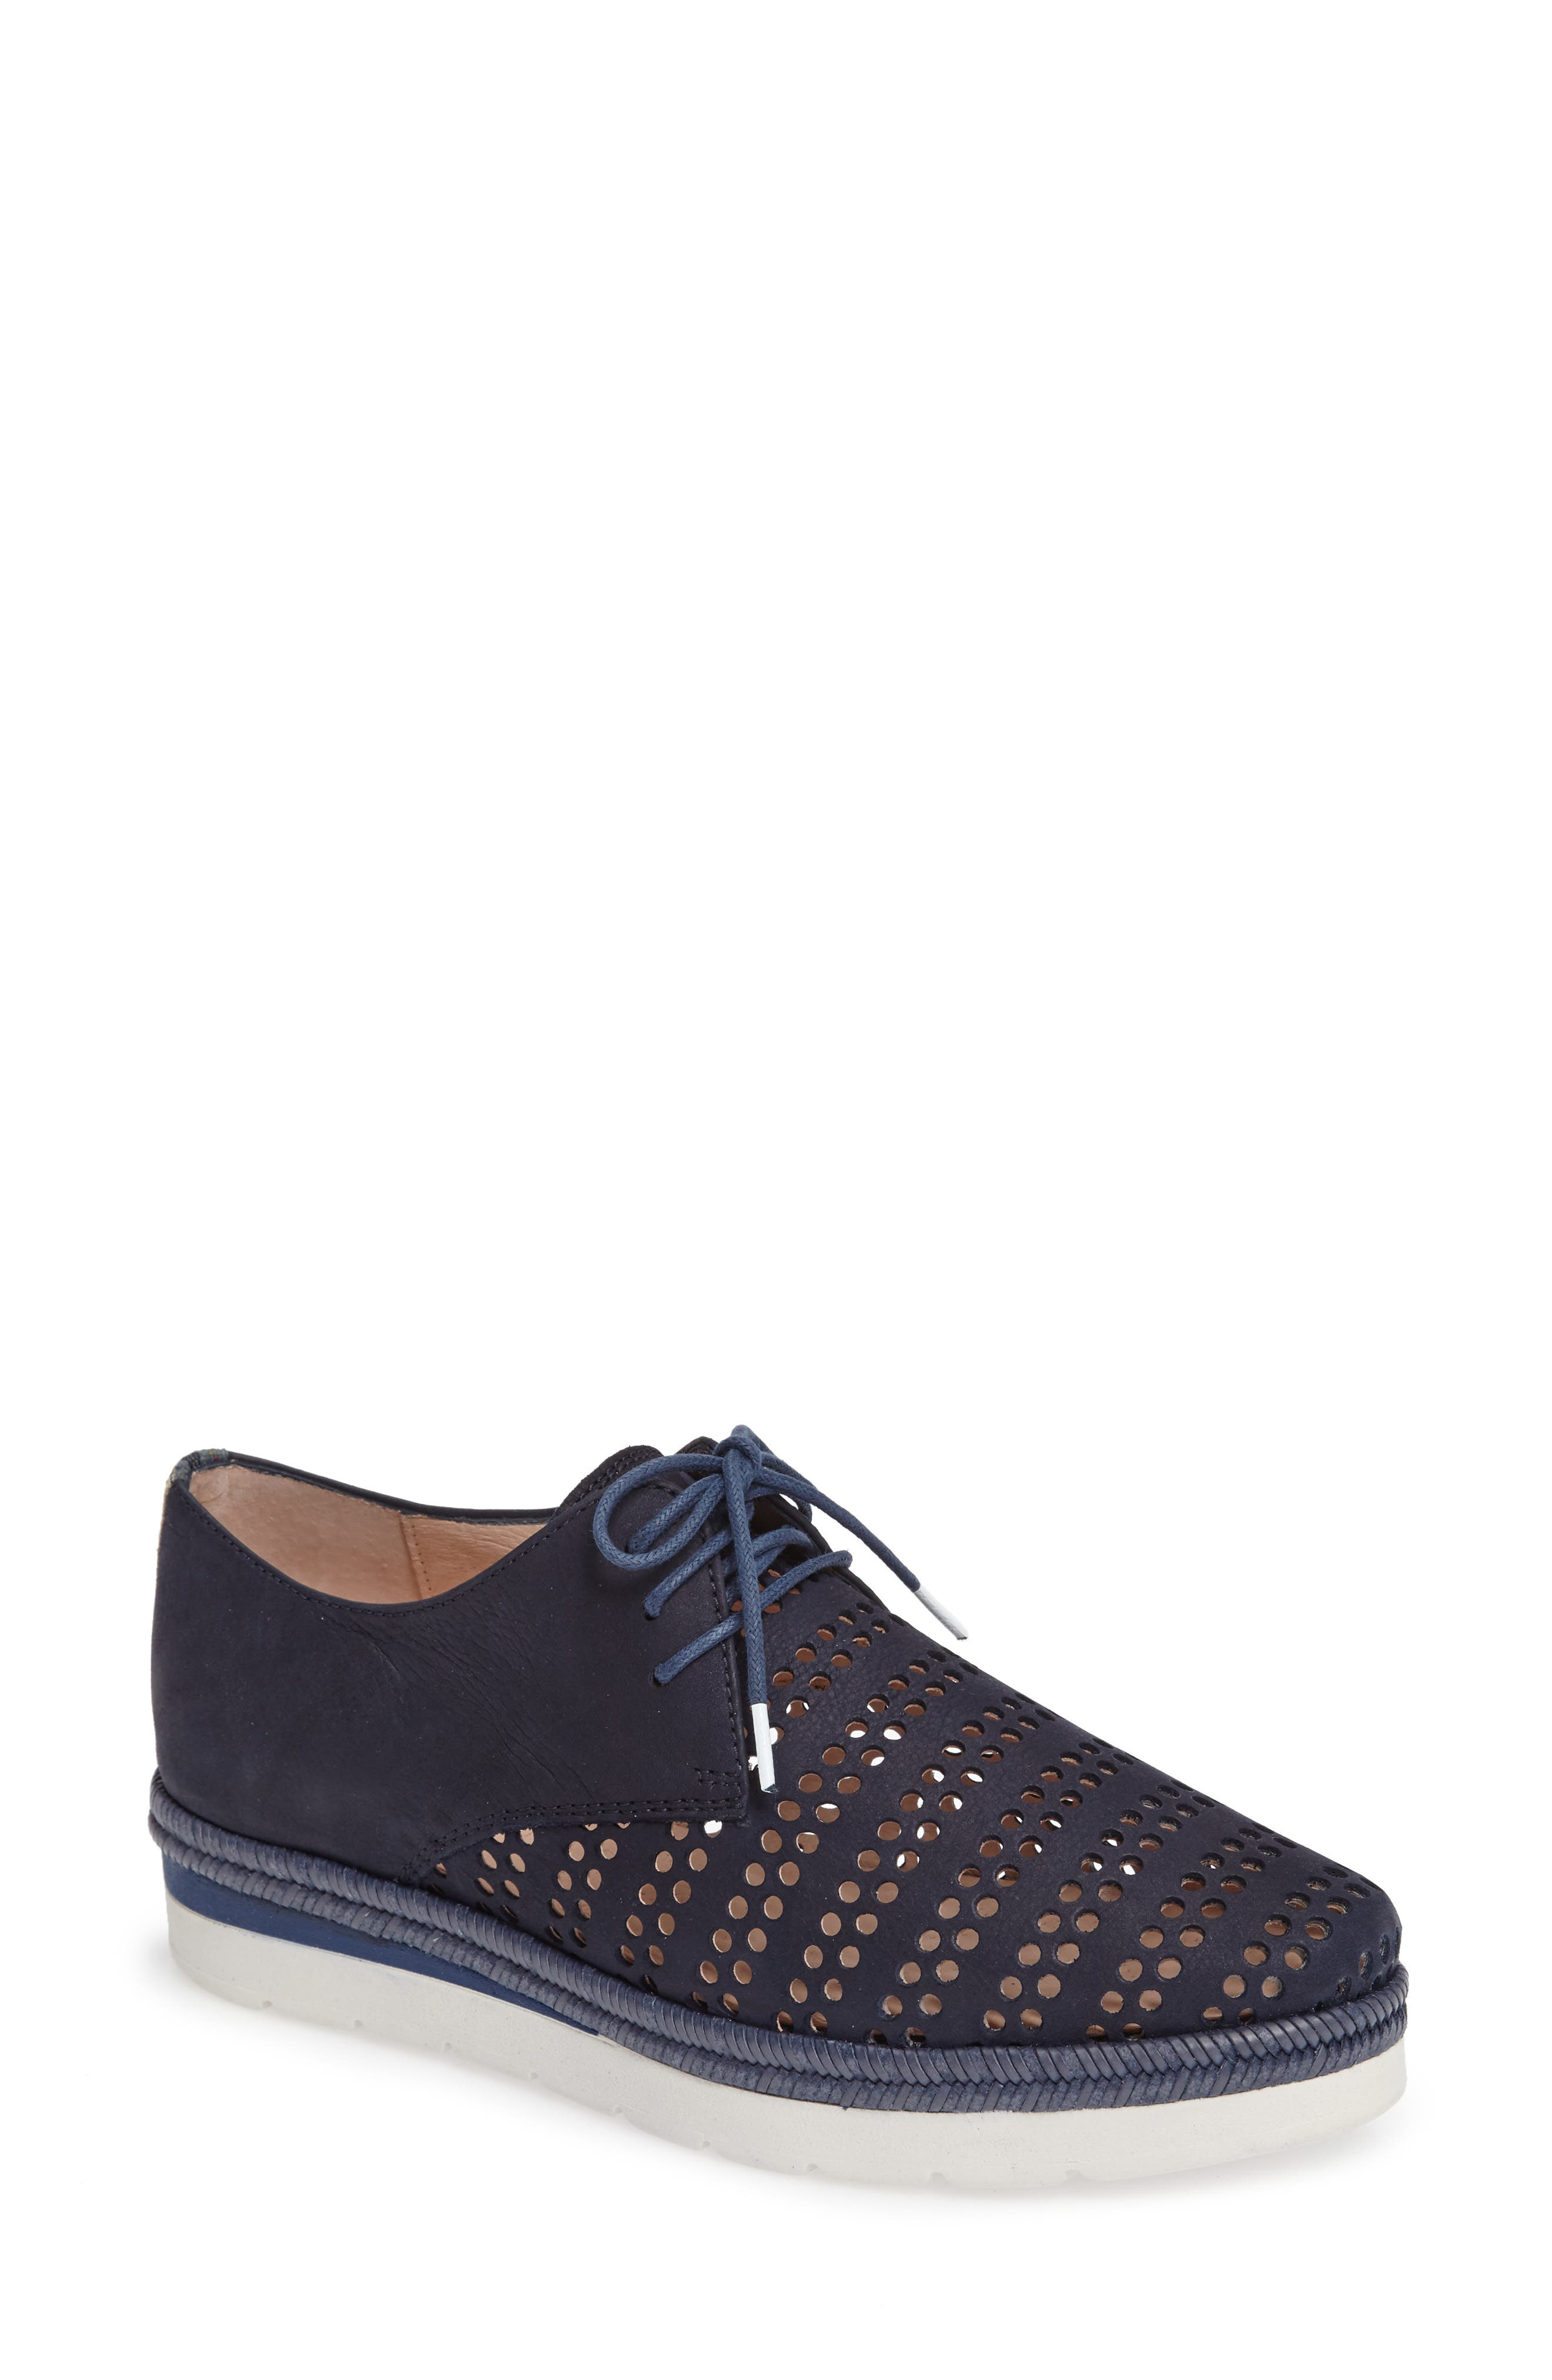 HISPANITAS 'Laken' Perforated Platform Derby, Main, color, PEACH JEANS LEATHER